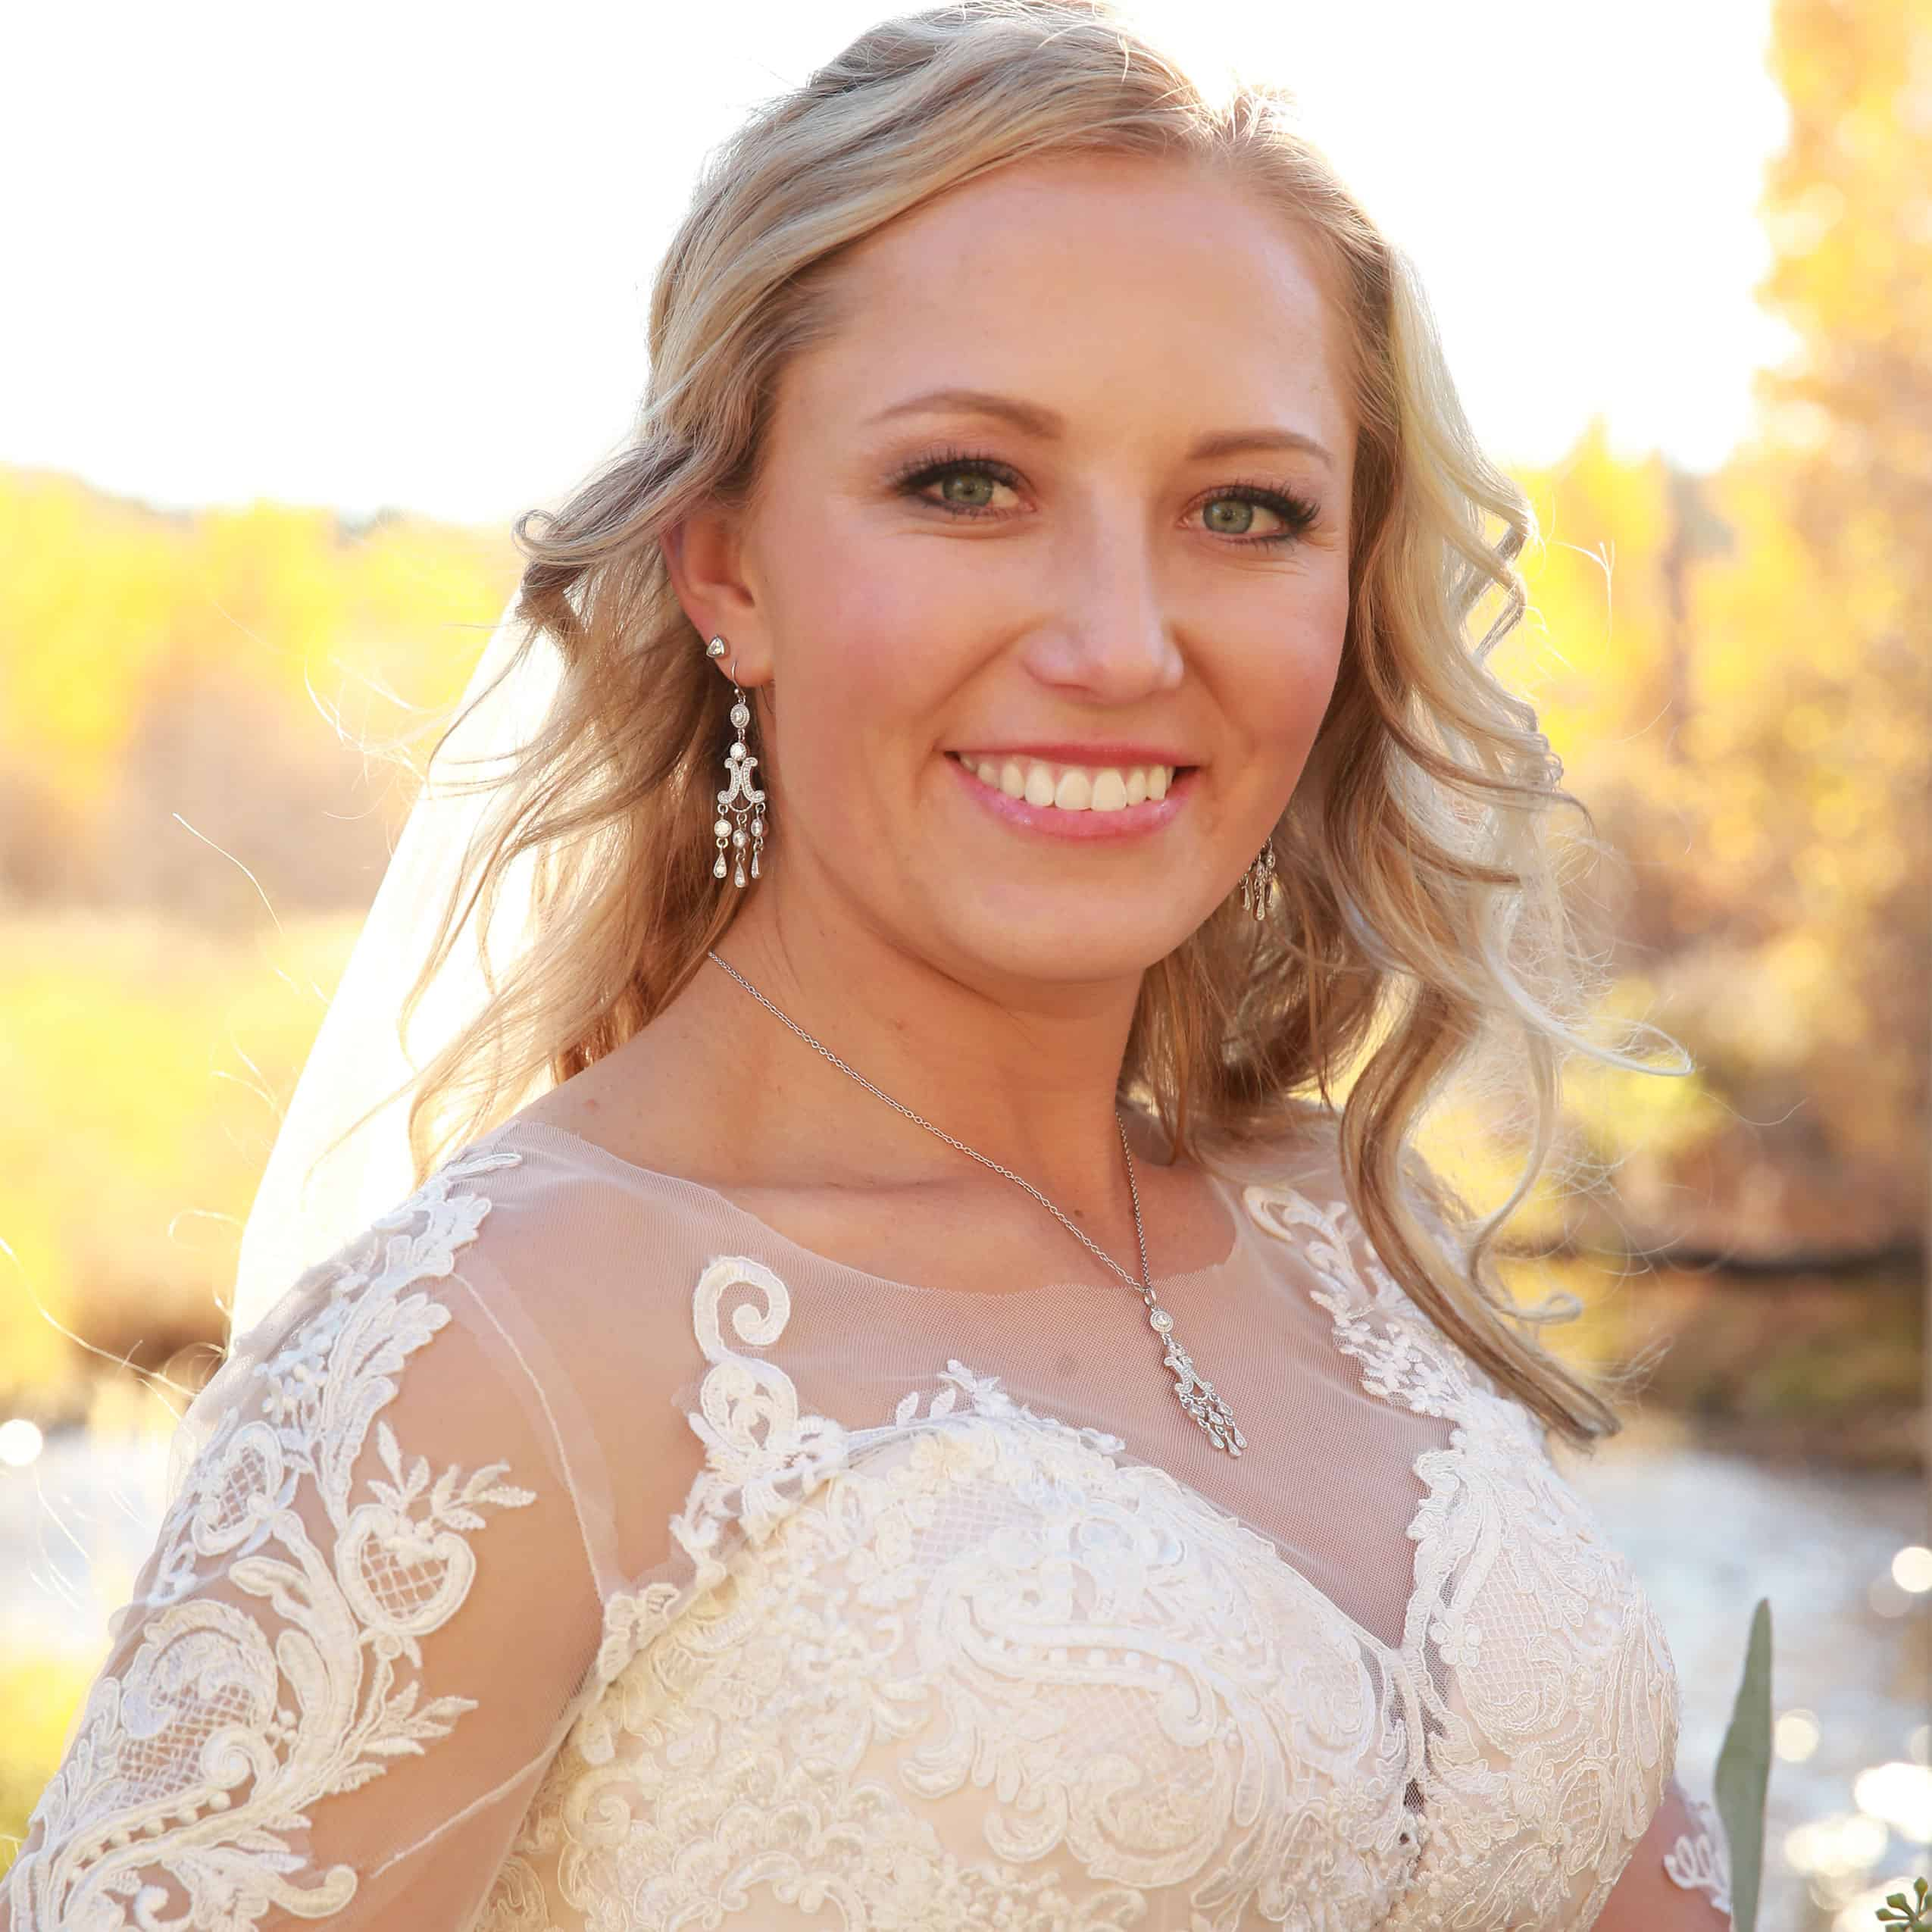 Montana Silversmiths necklace and earrings on a bride on her wedding day